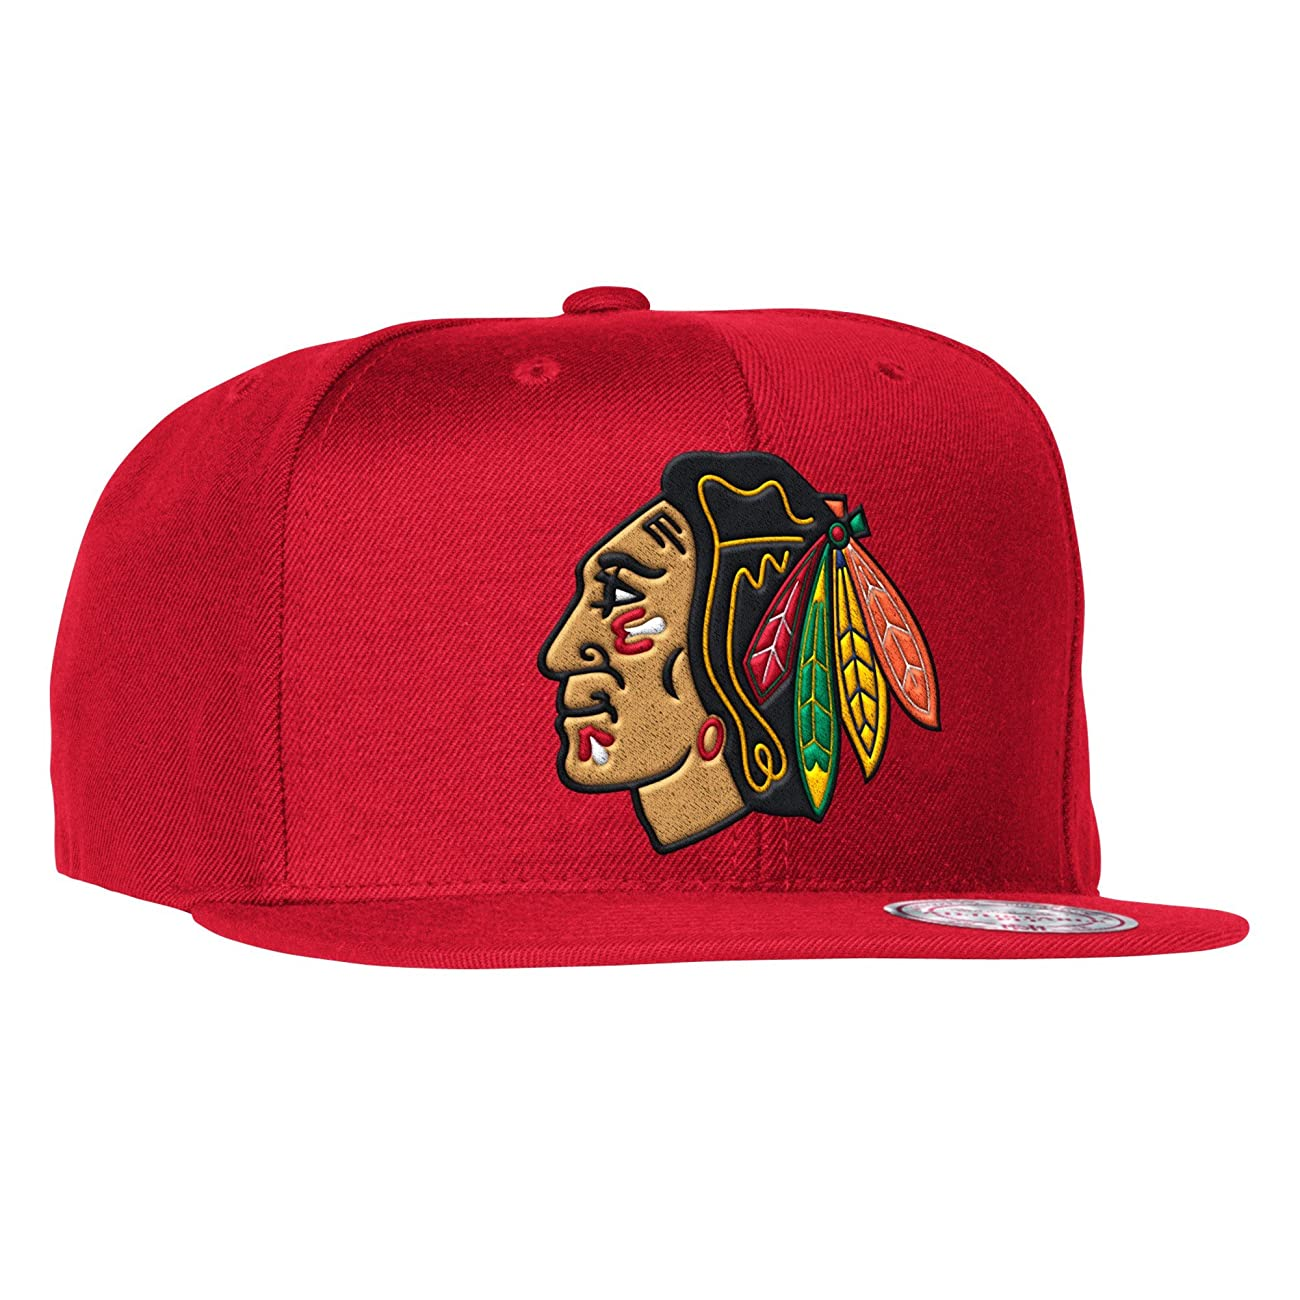 Mitchell & Ness Men's The Chicago Blackhawks Vintage Wool Solid Snapback Cap One Size Red 0